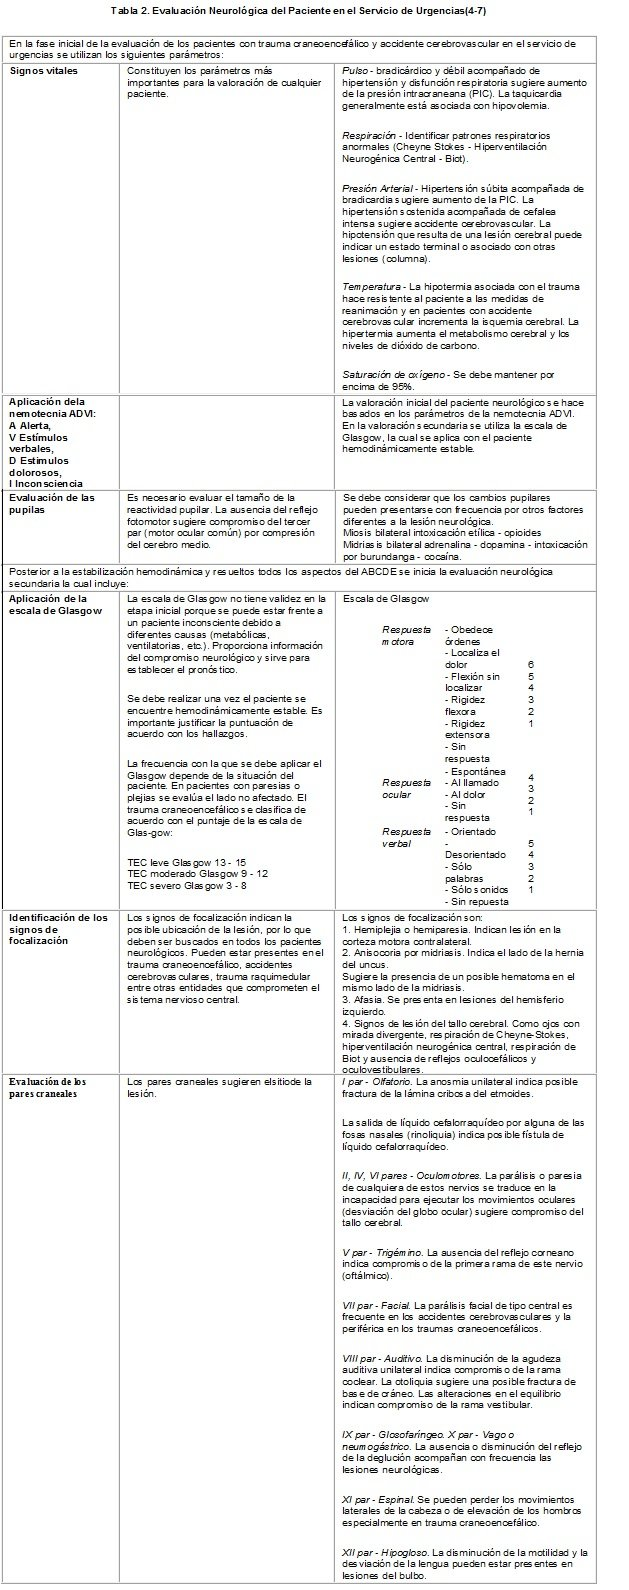 estatinas y diabetes fda